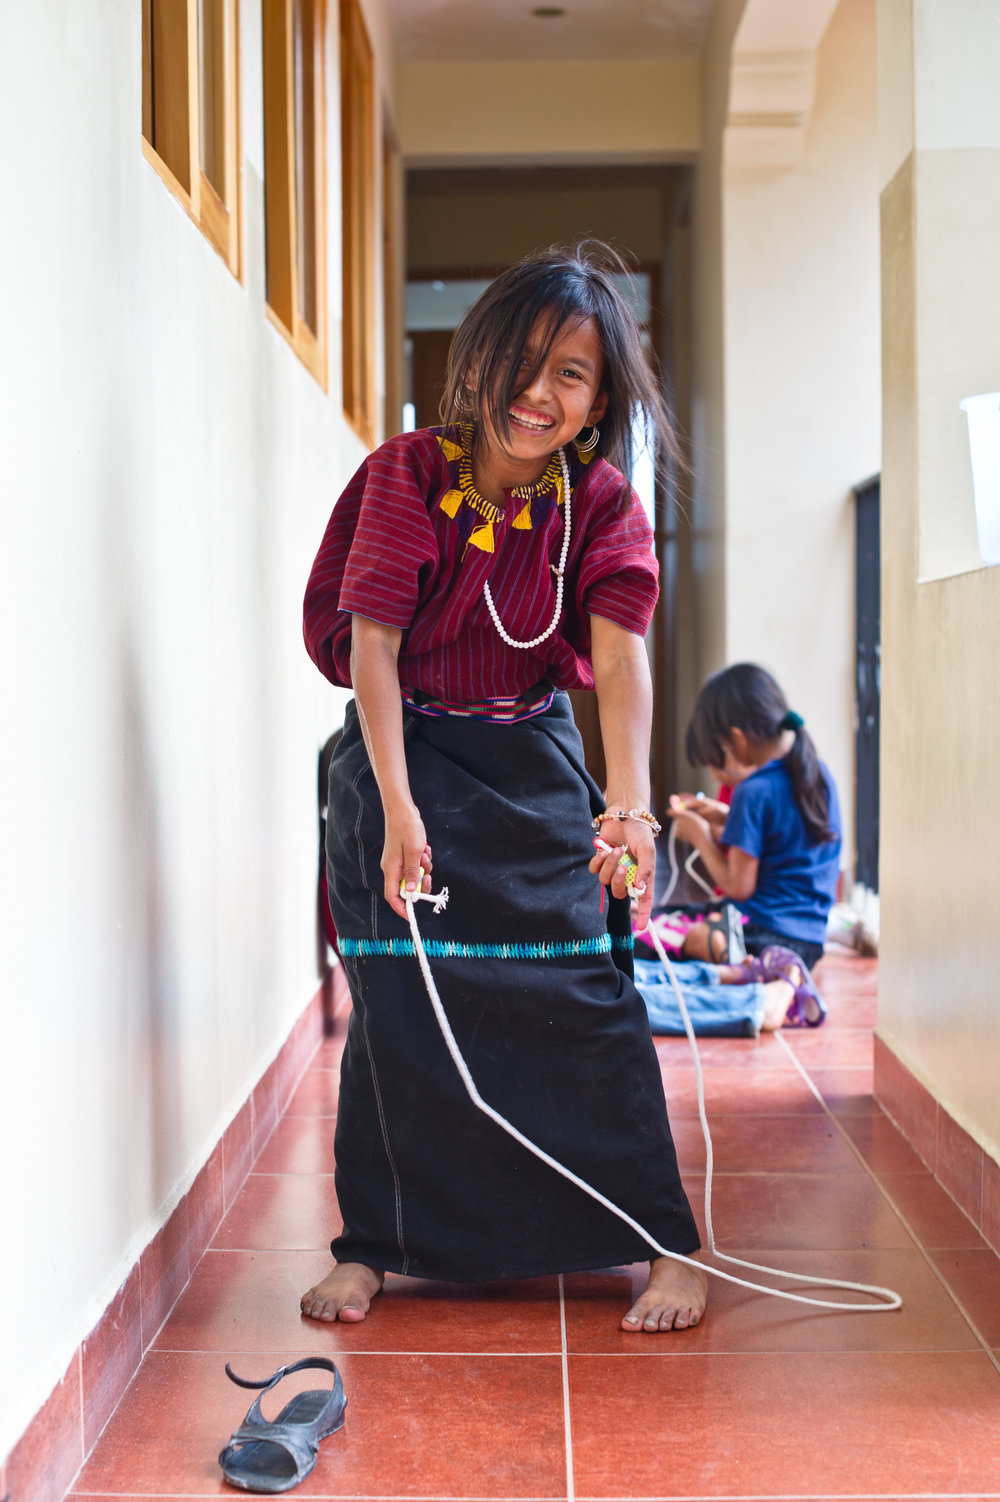 The craft projects are built around materials that are easily found in the pueblo. Items like rope, empty snack bags and discarded bottle caps become jump ropes and art materials.